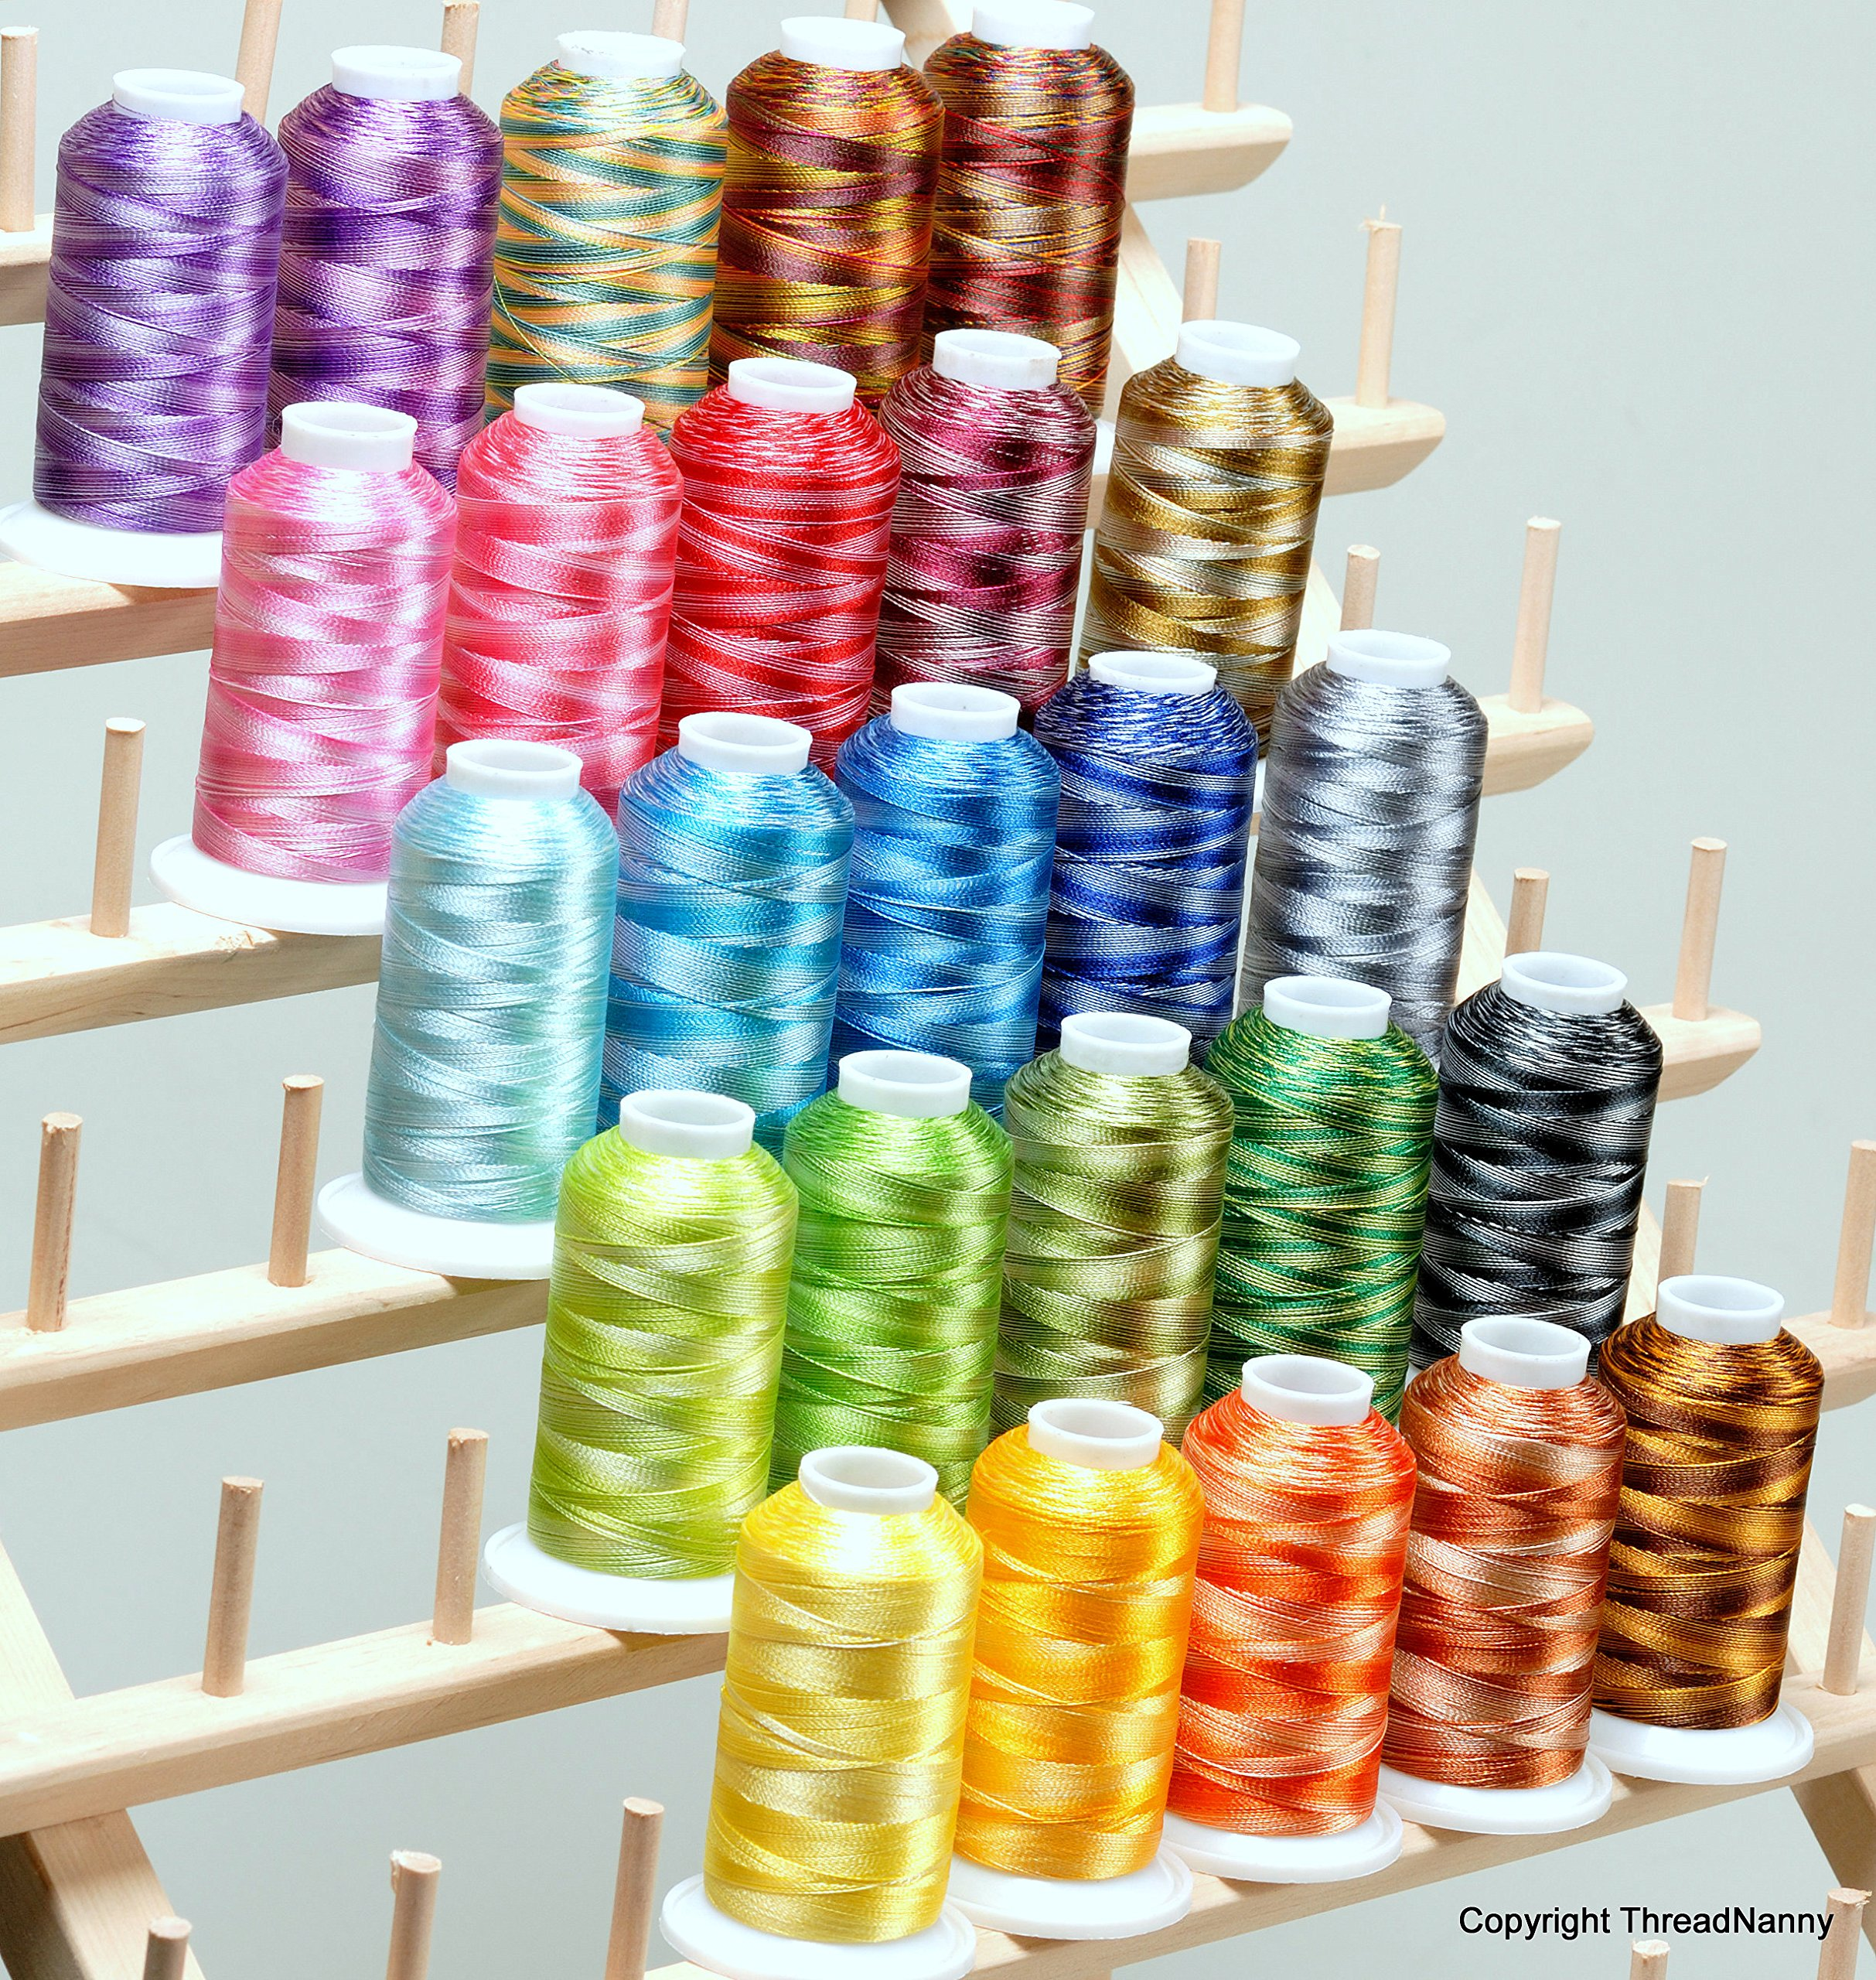 25 LARGE Cones Variegated Embroidery Machine Thread 40wt 1100yards Poly120D/2 by ThreadNanny